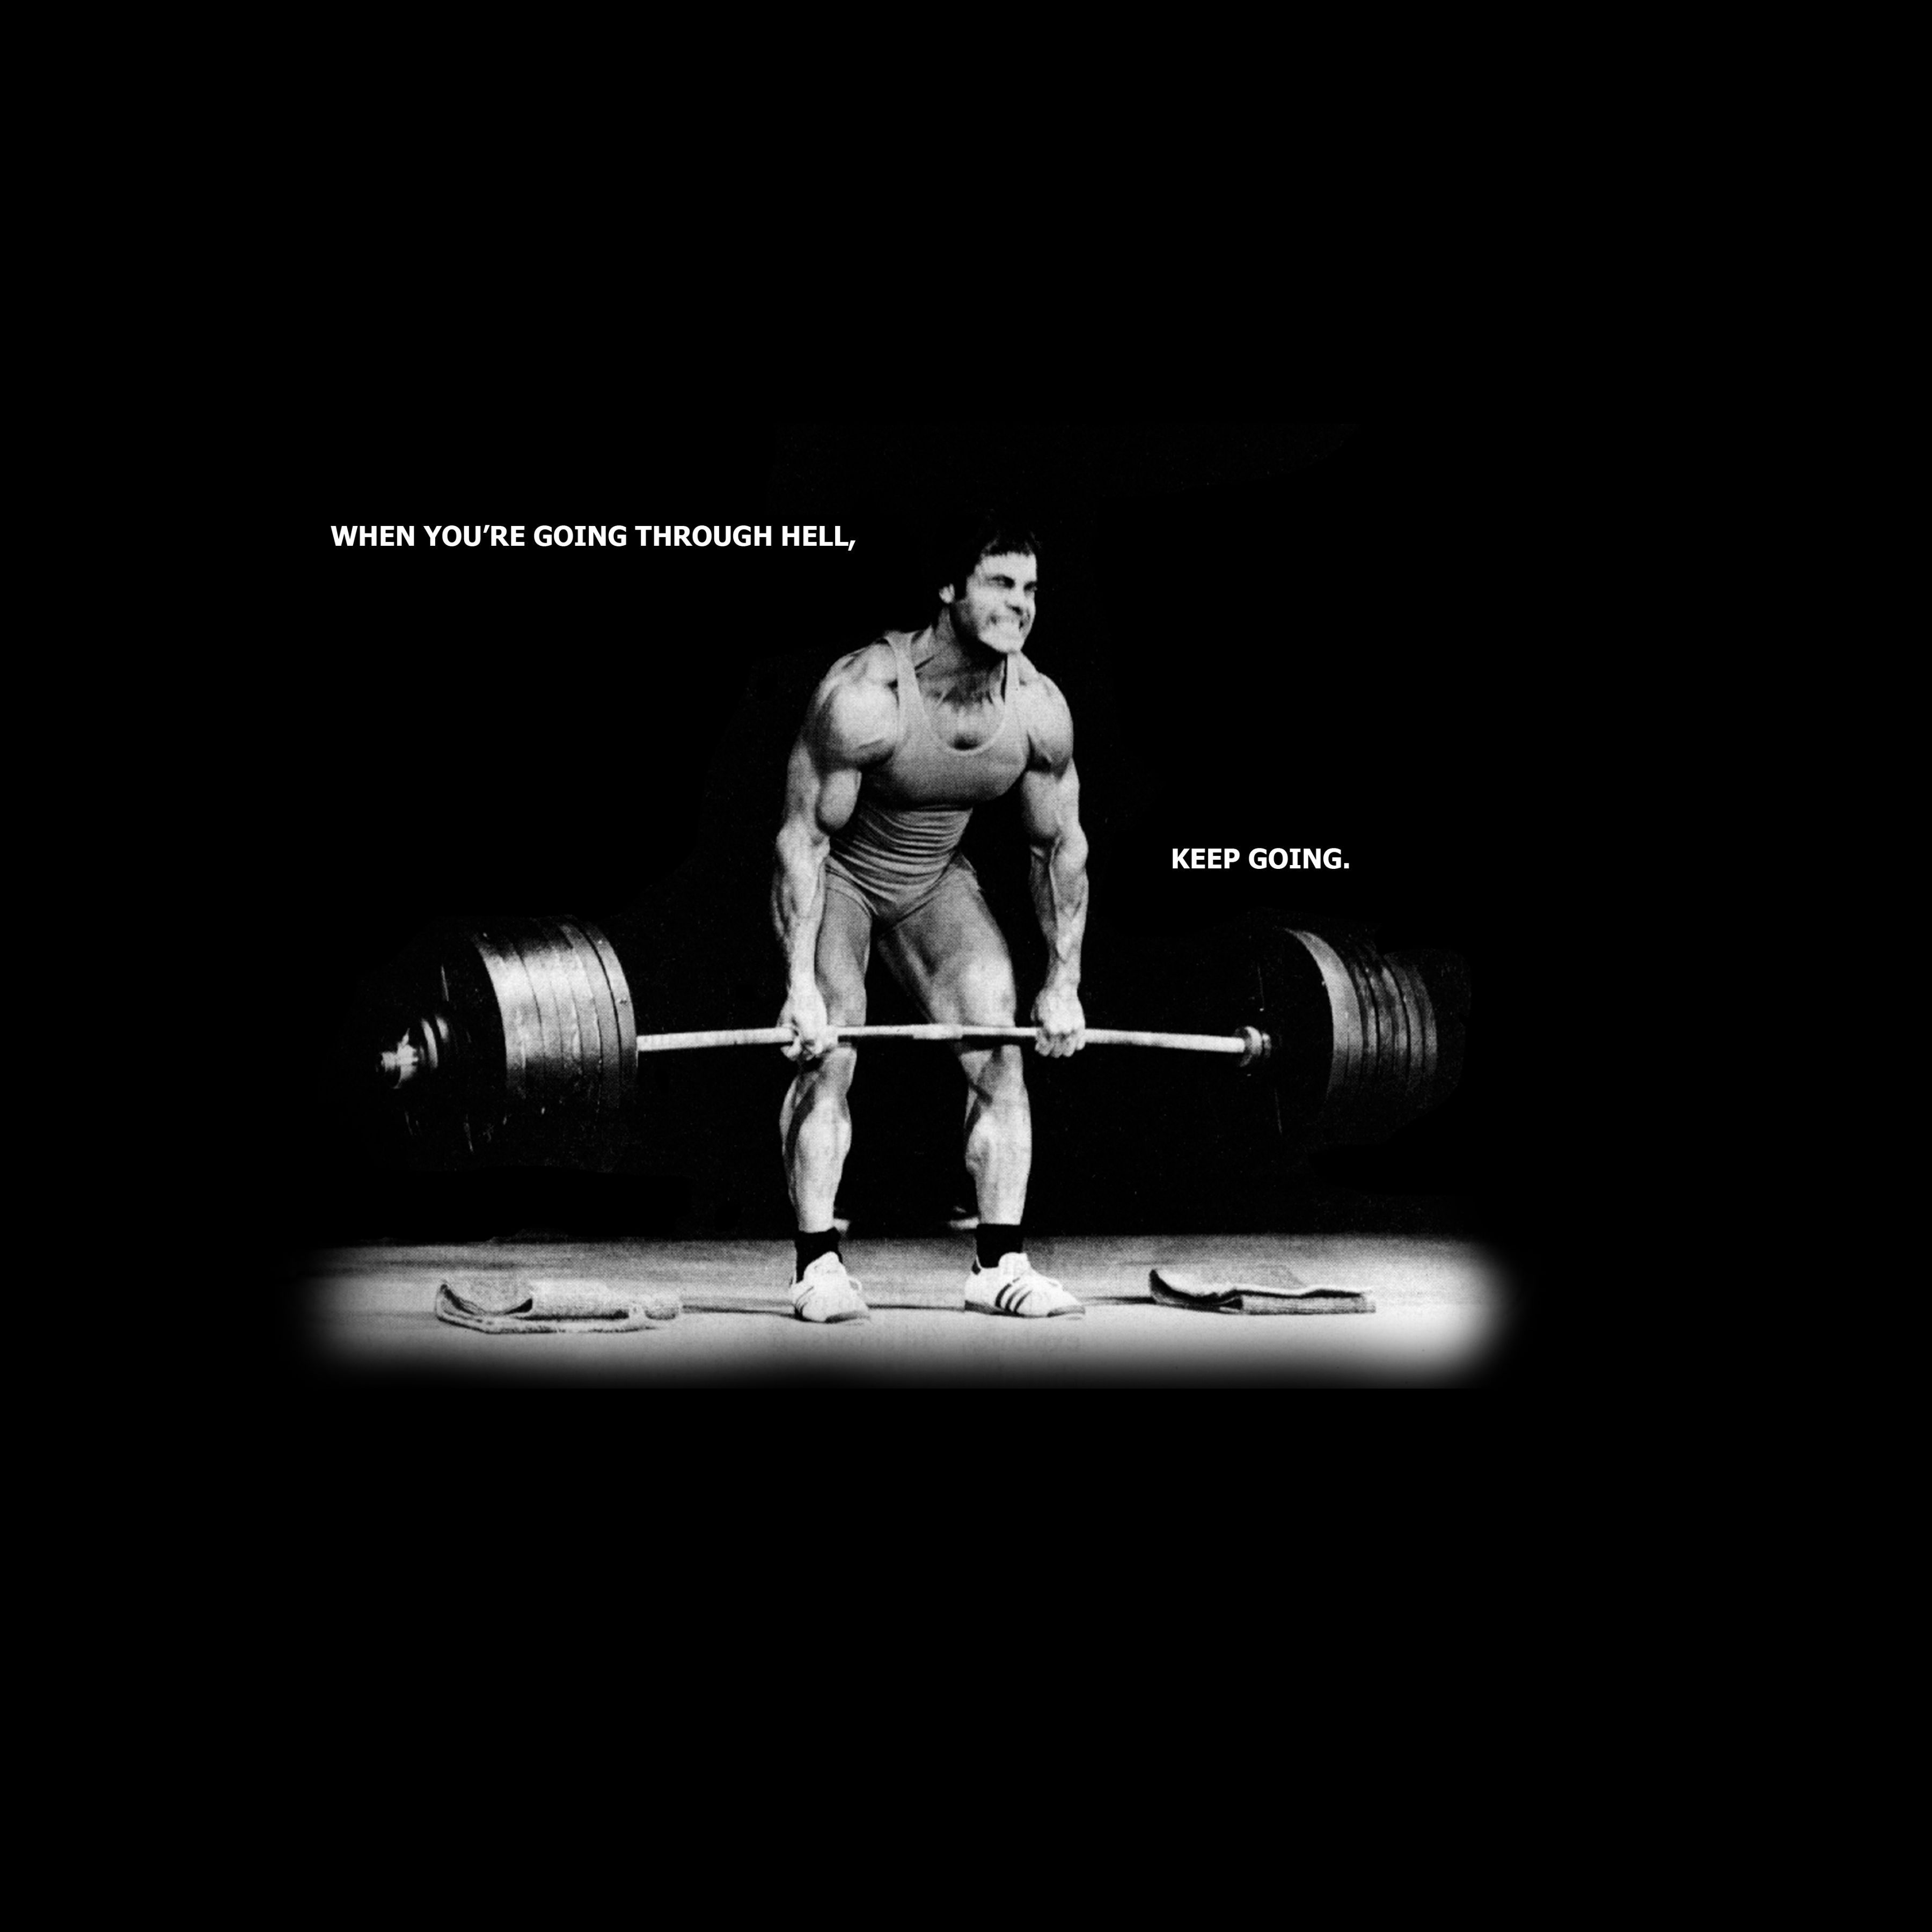 3600x3600 Most Motivational Wallpapers - Page 22 - Bodybuilding.com Forums